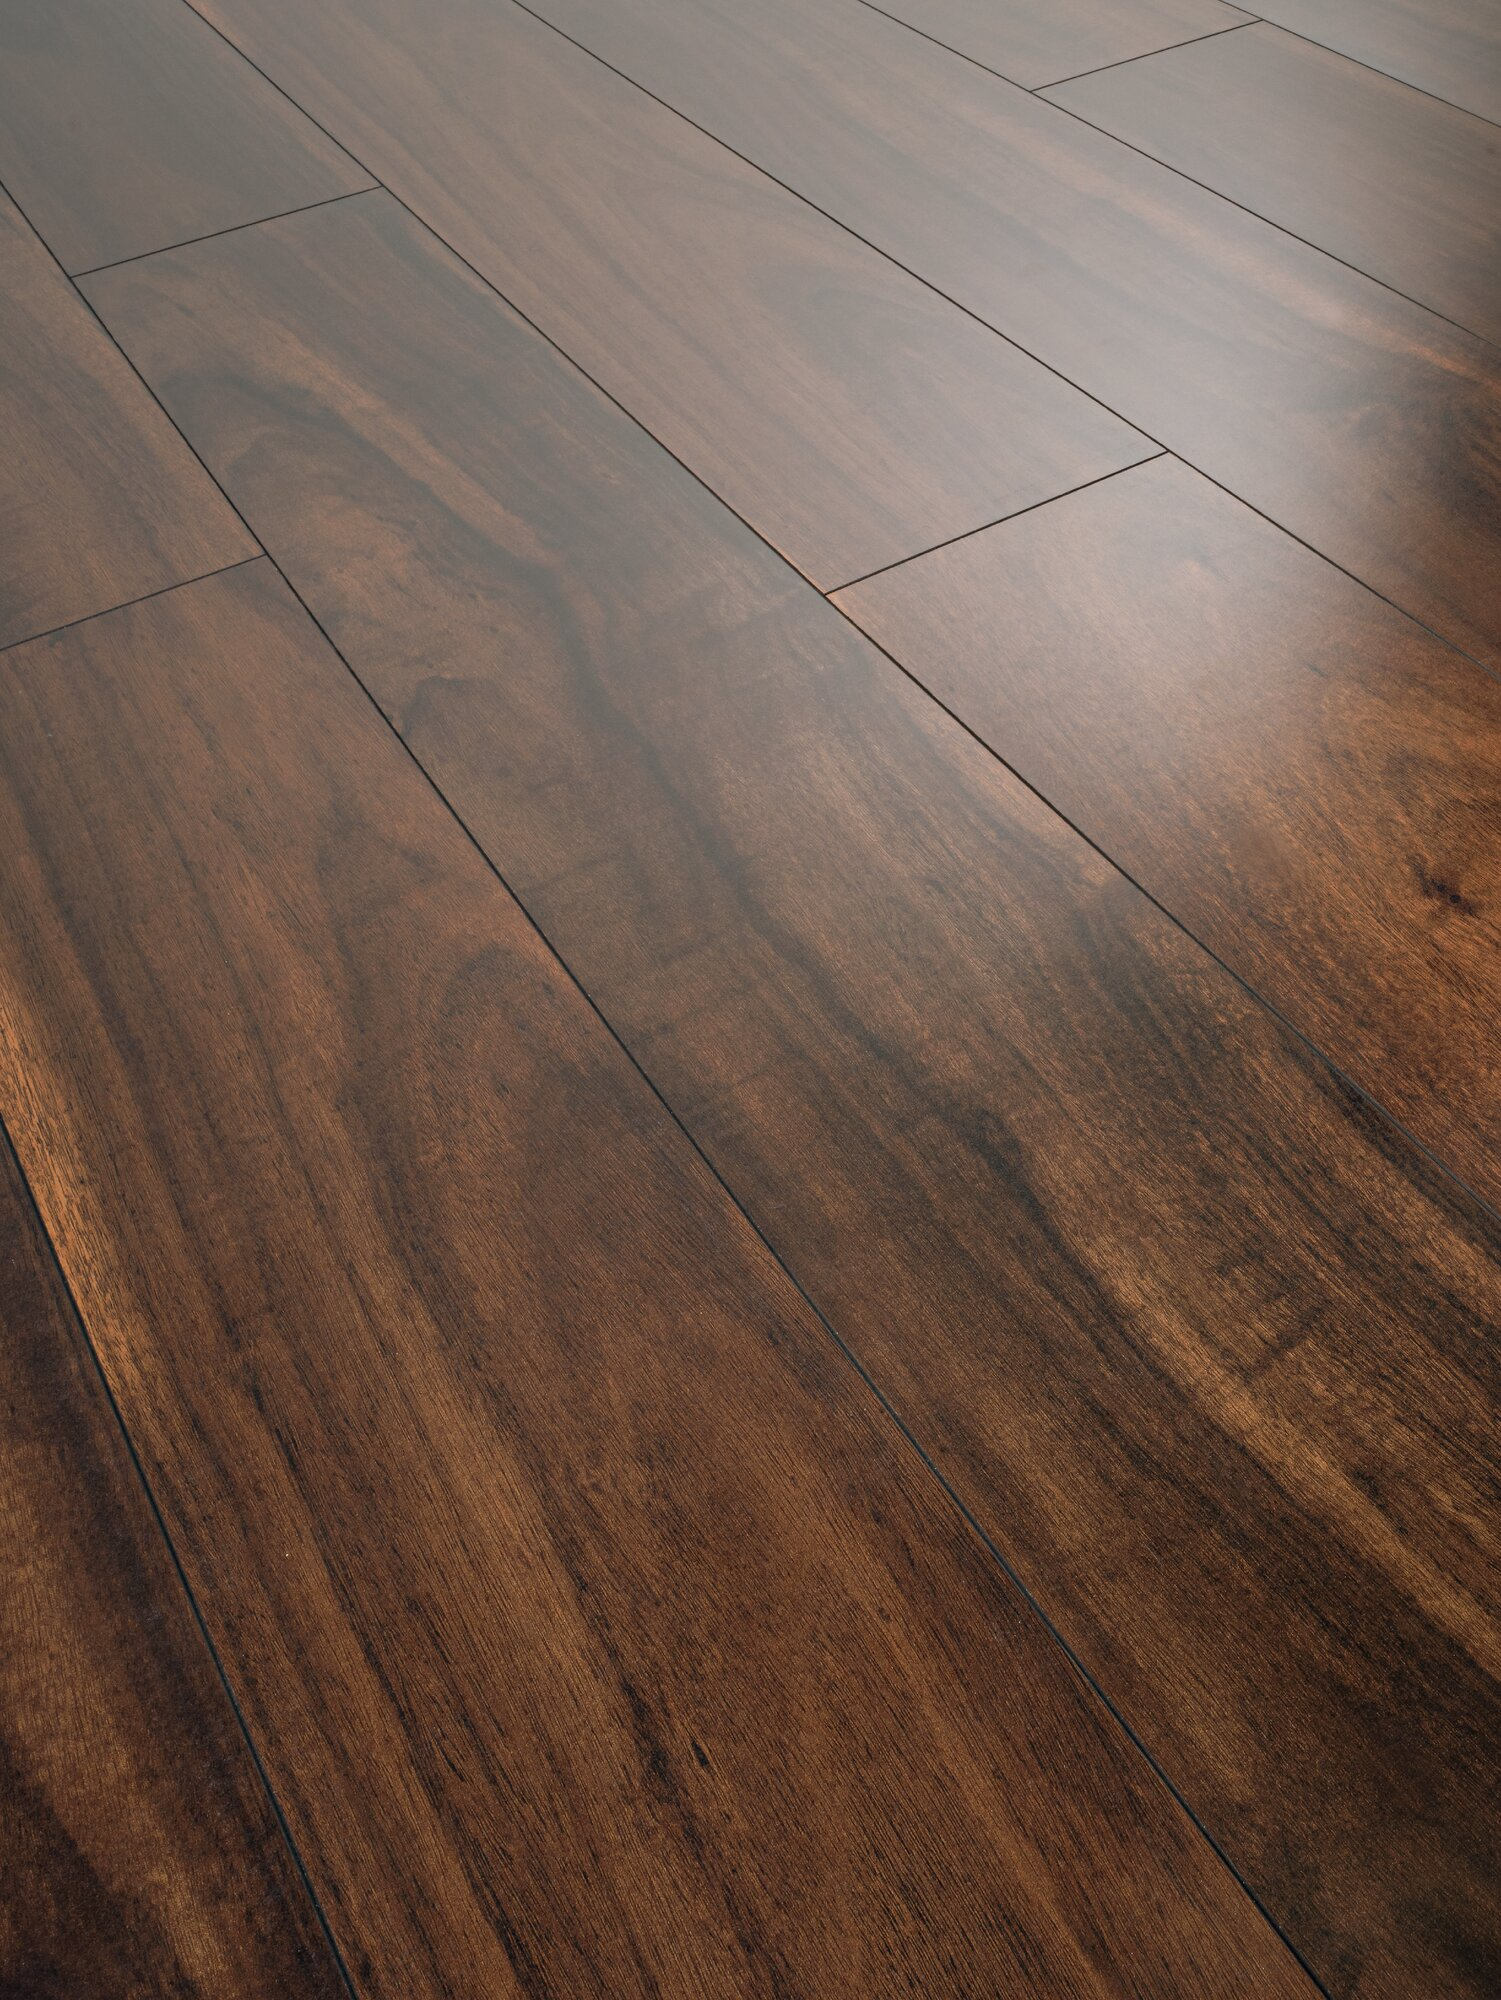 Parchet laminat lucios Swiss Krono Noblesse Brilliant D 4938 Majestetic Walnut poza 2021